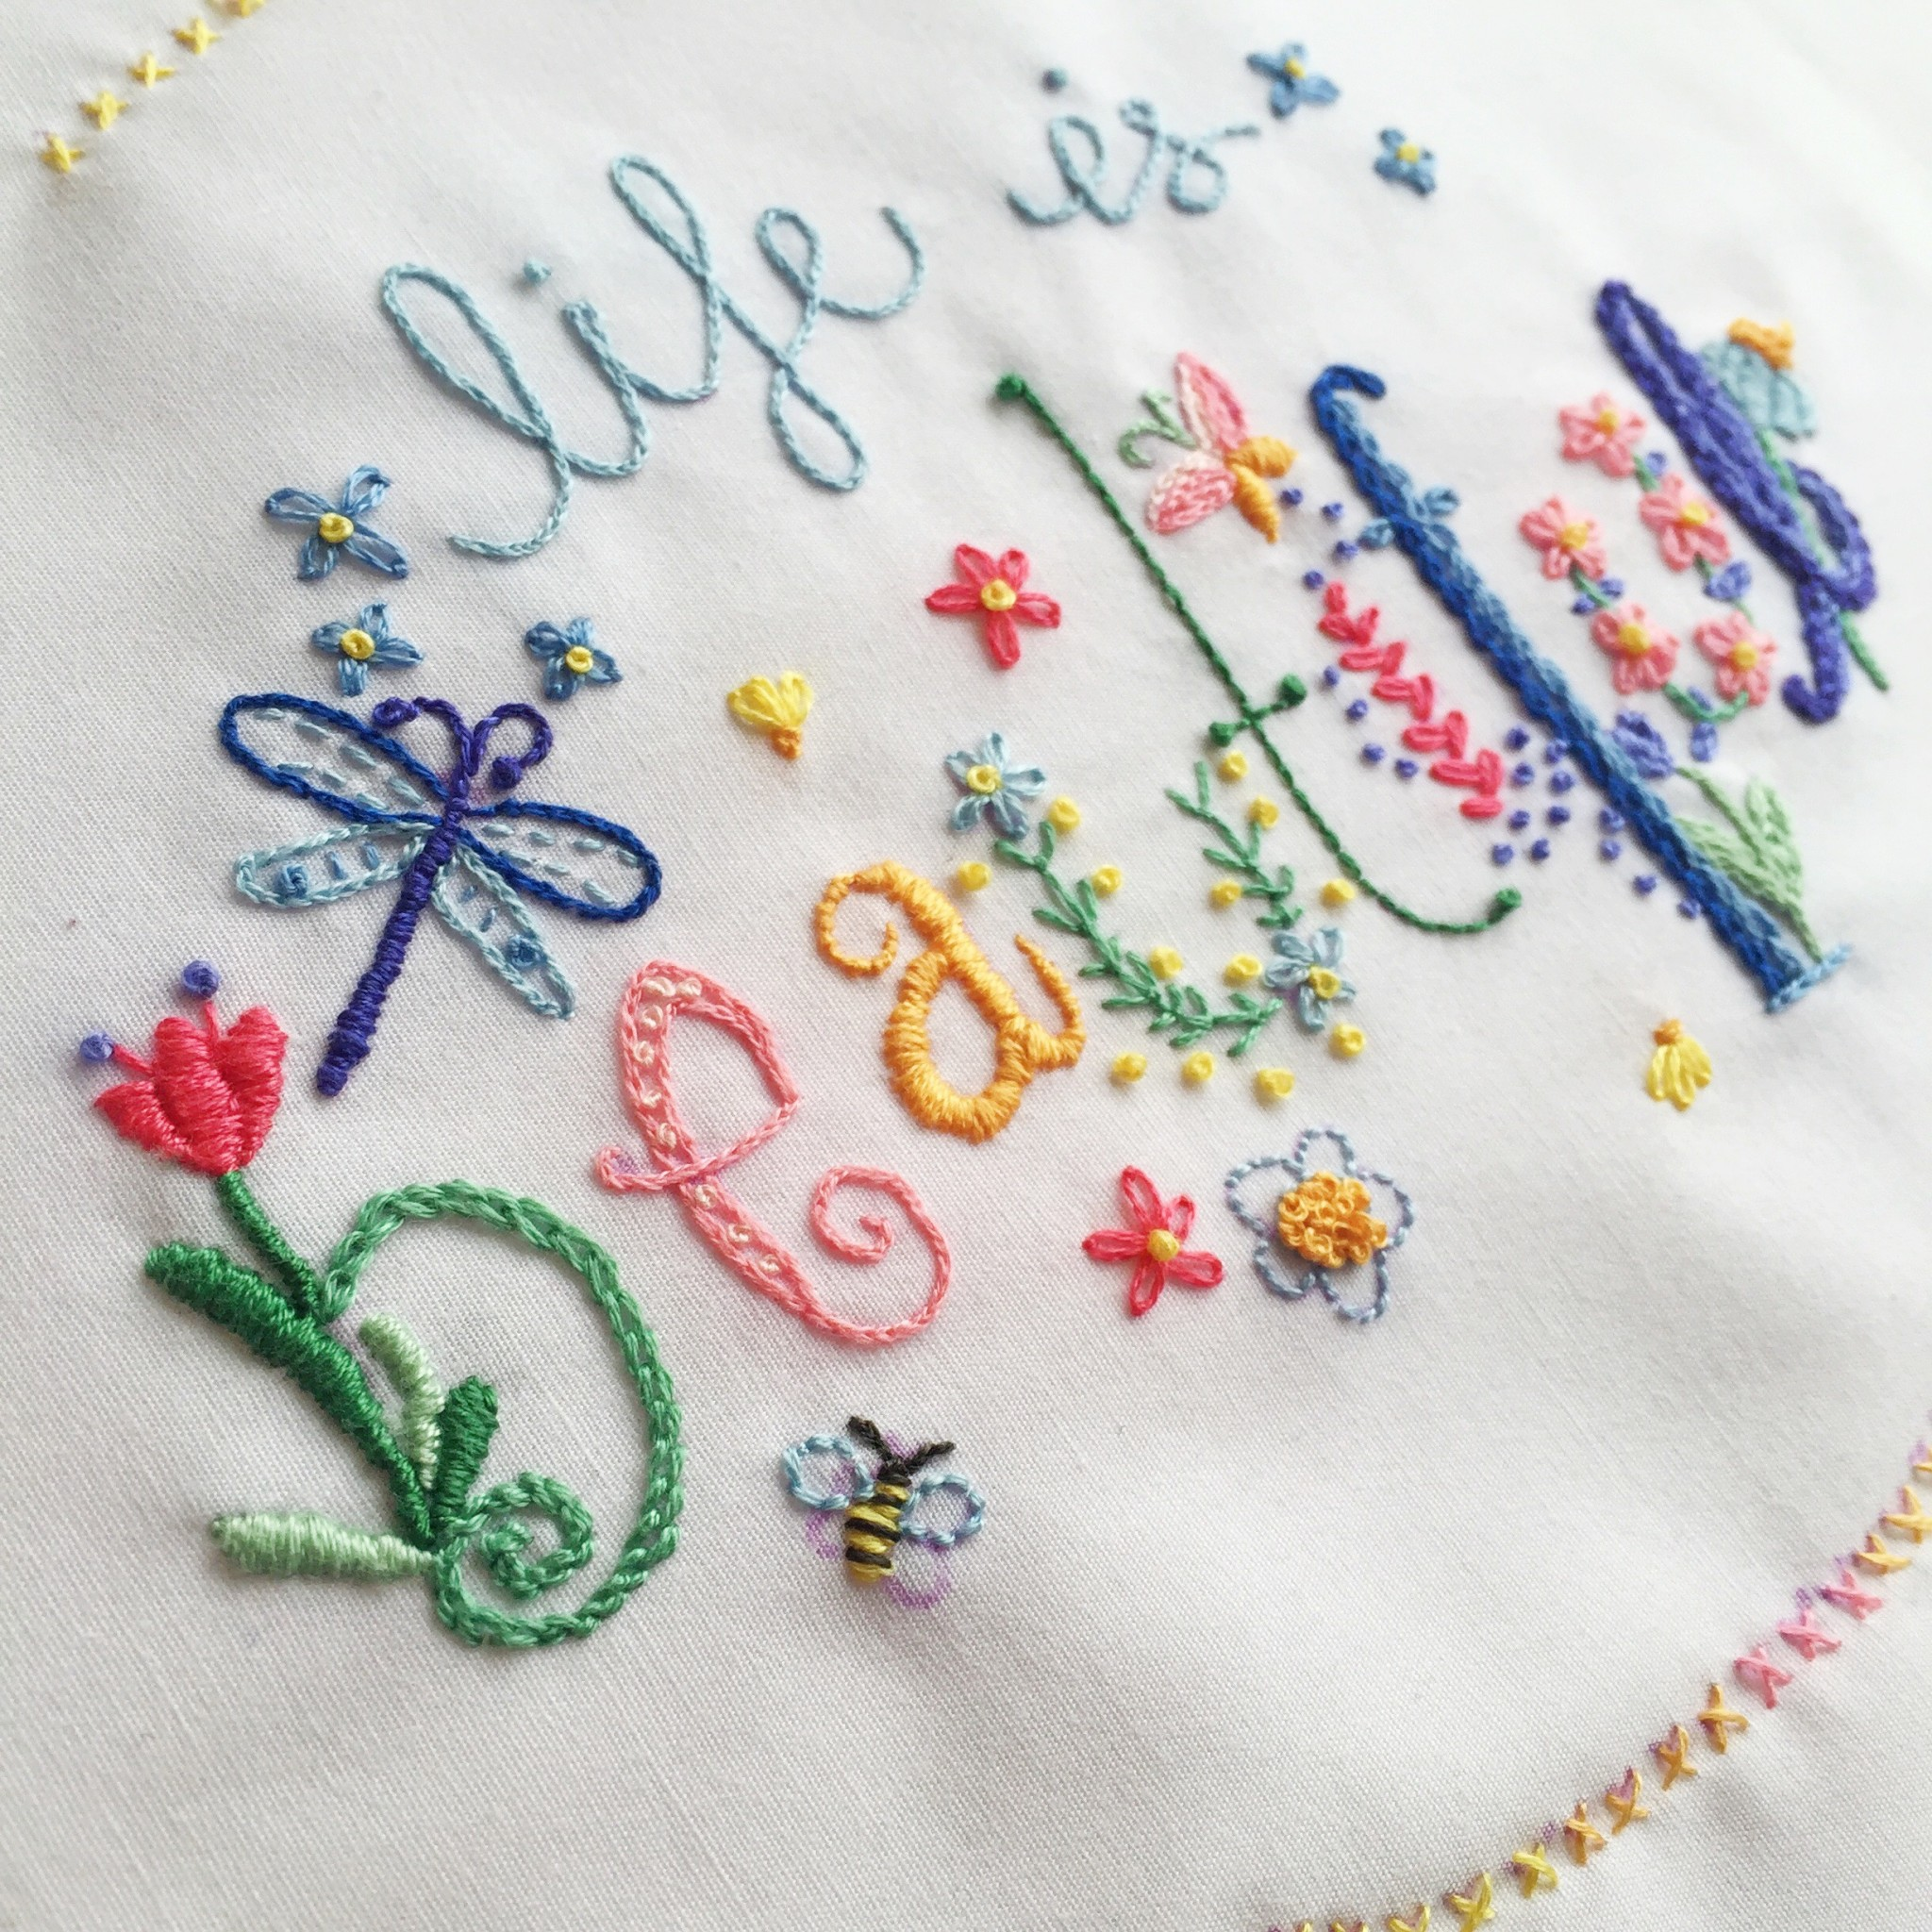 Life is Beautiful embroidery sampler | Hello! Hooray!